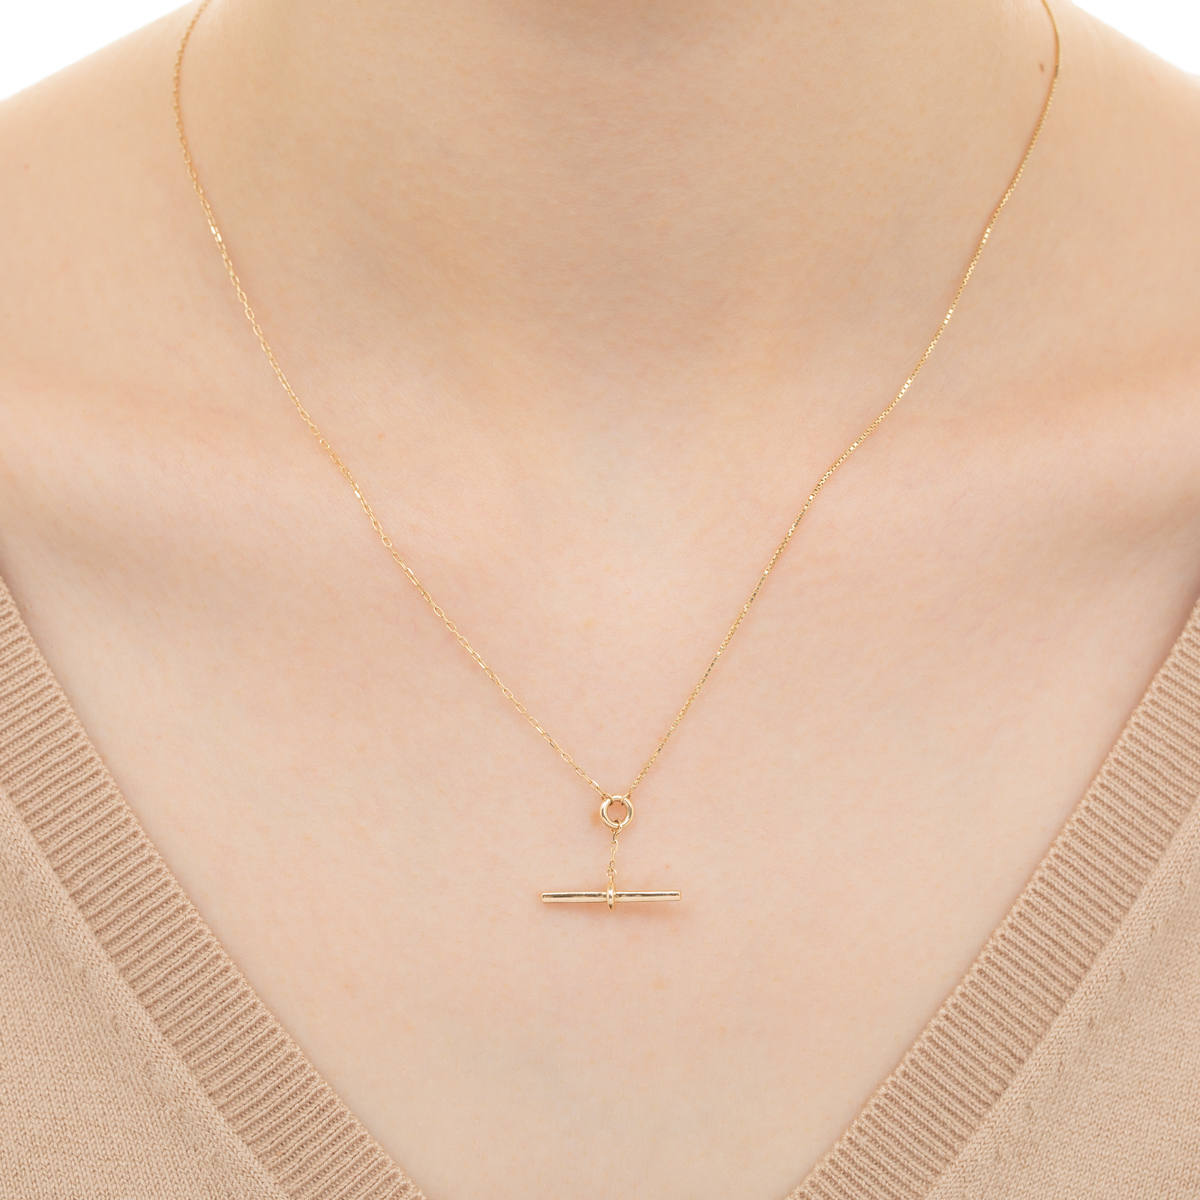 Trapeze Necklace TP04KMN Trapeze  ベネチアンチェーン ケーブルチェーン トラペーズ